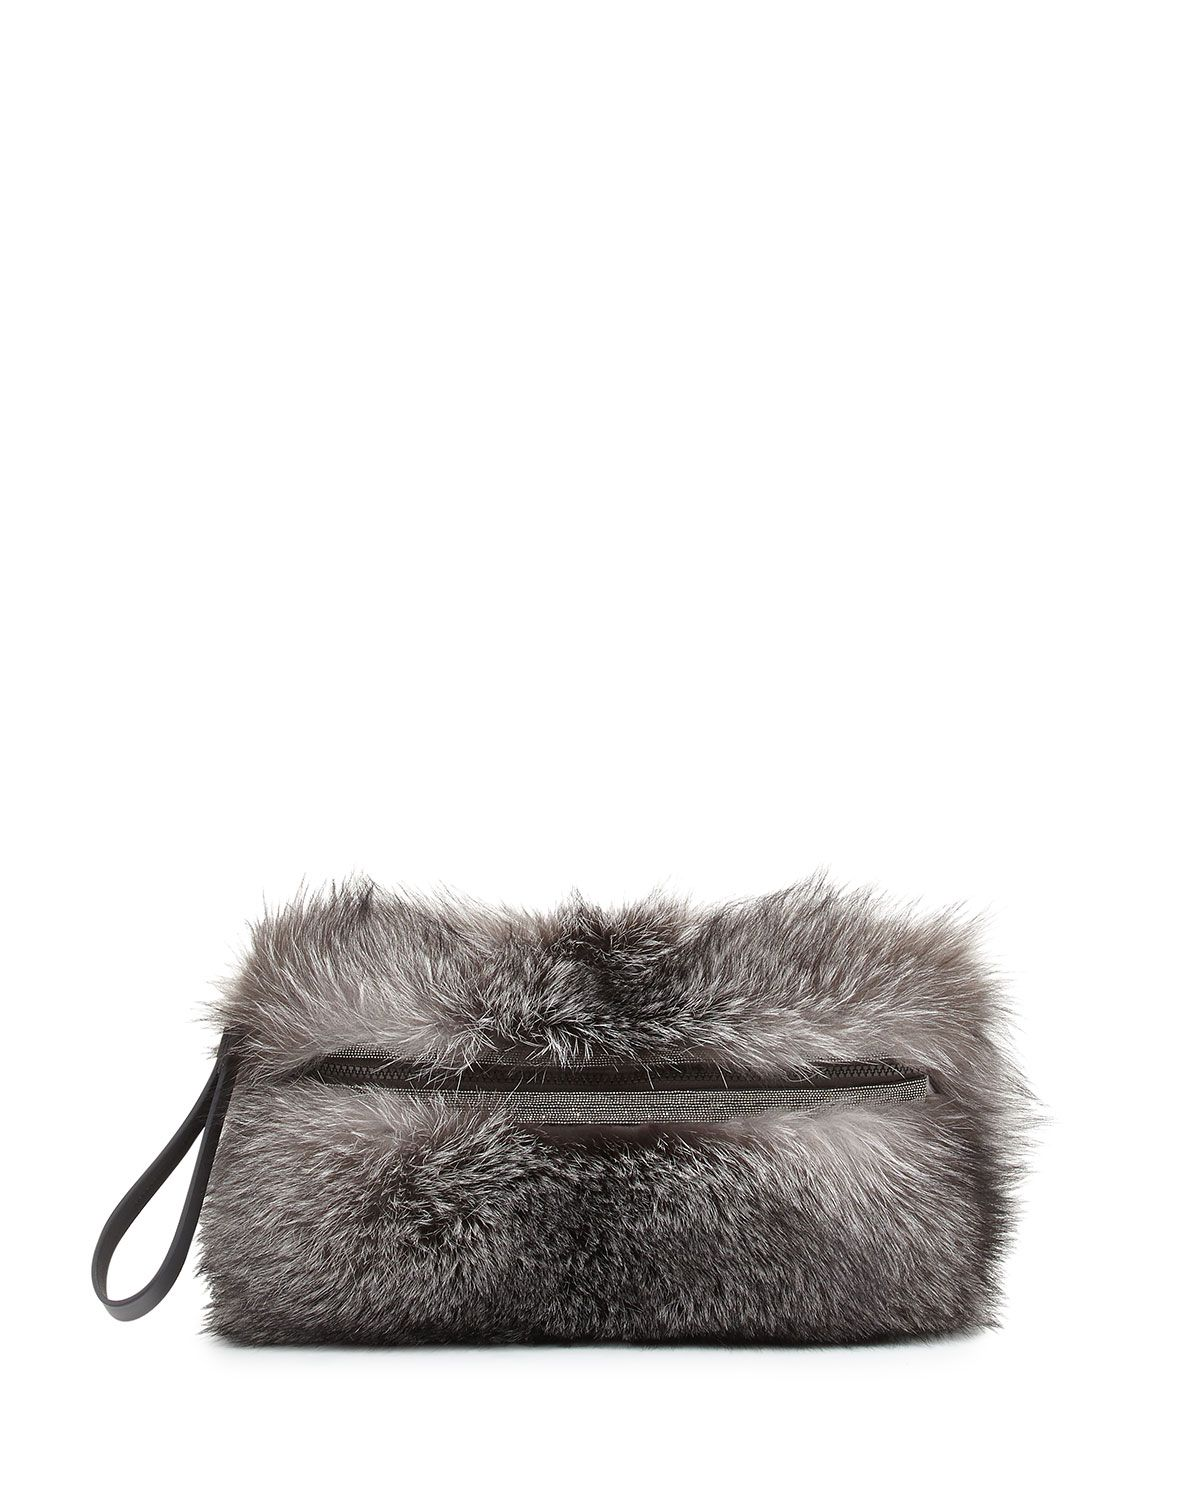 Fox Fur Medium Messenger Clutch Bag, Silver, Women's, Size: M - Brunello Cucinelli